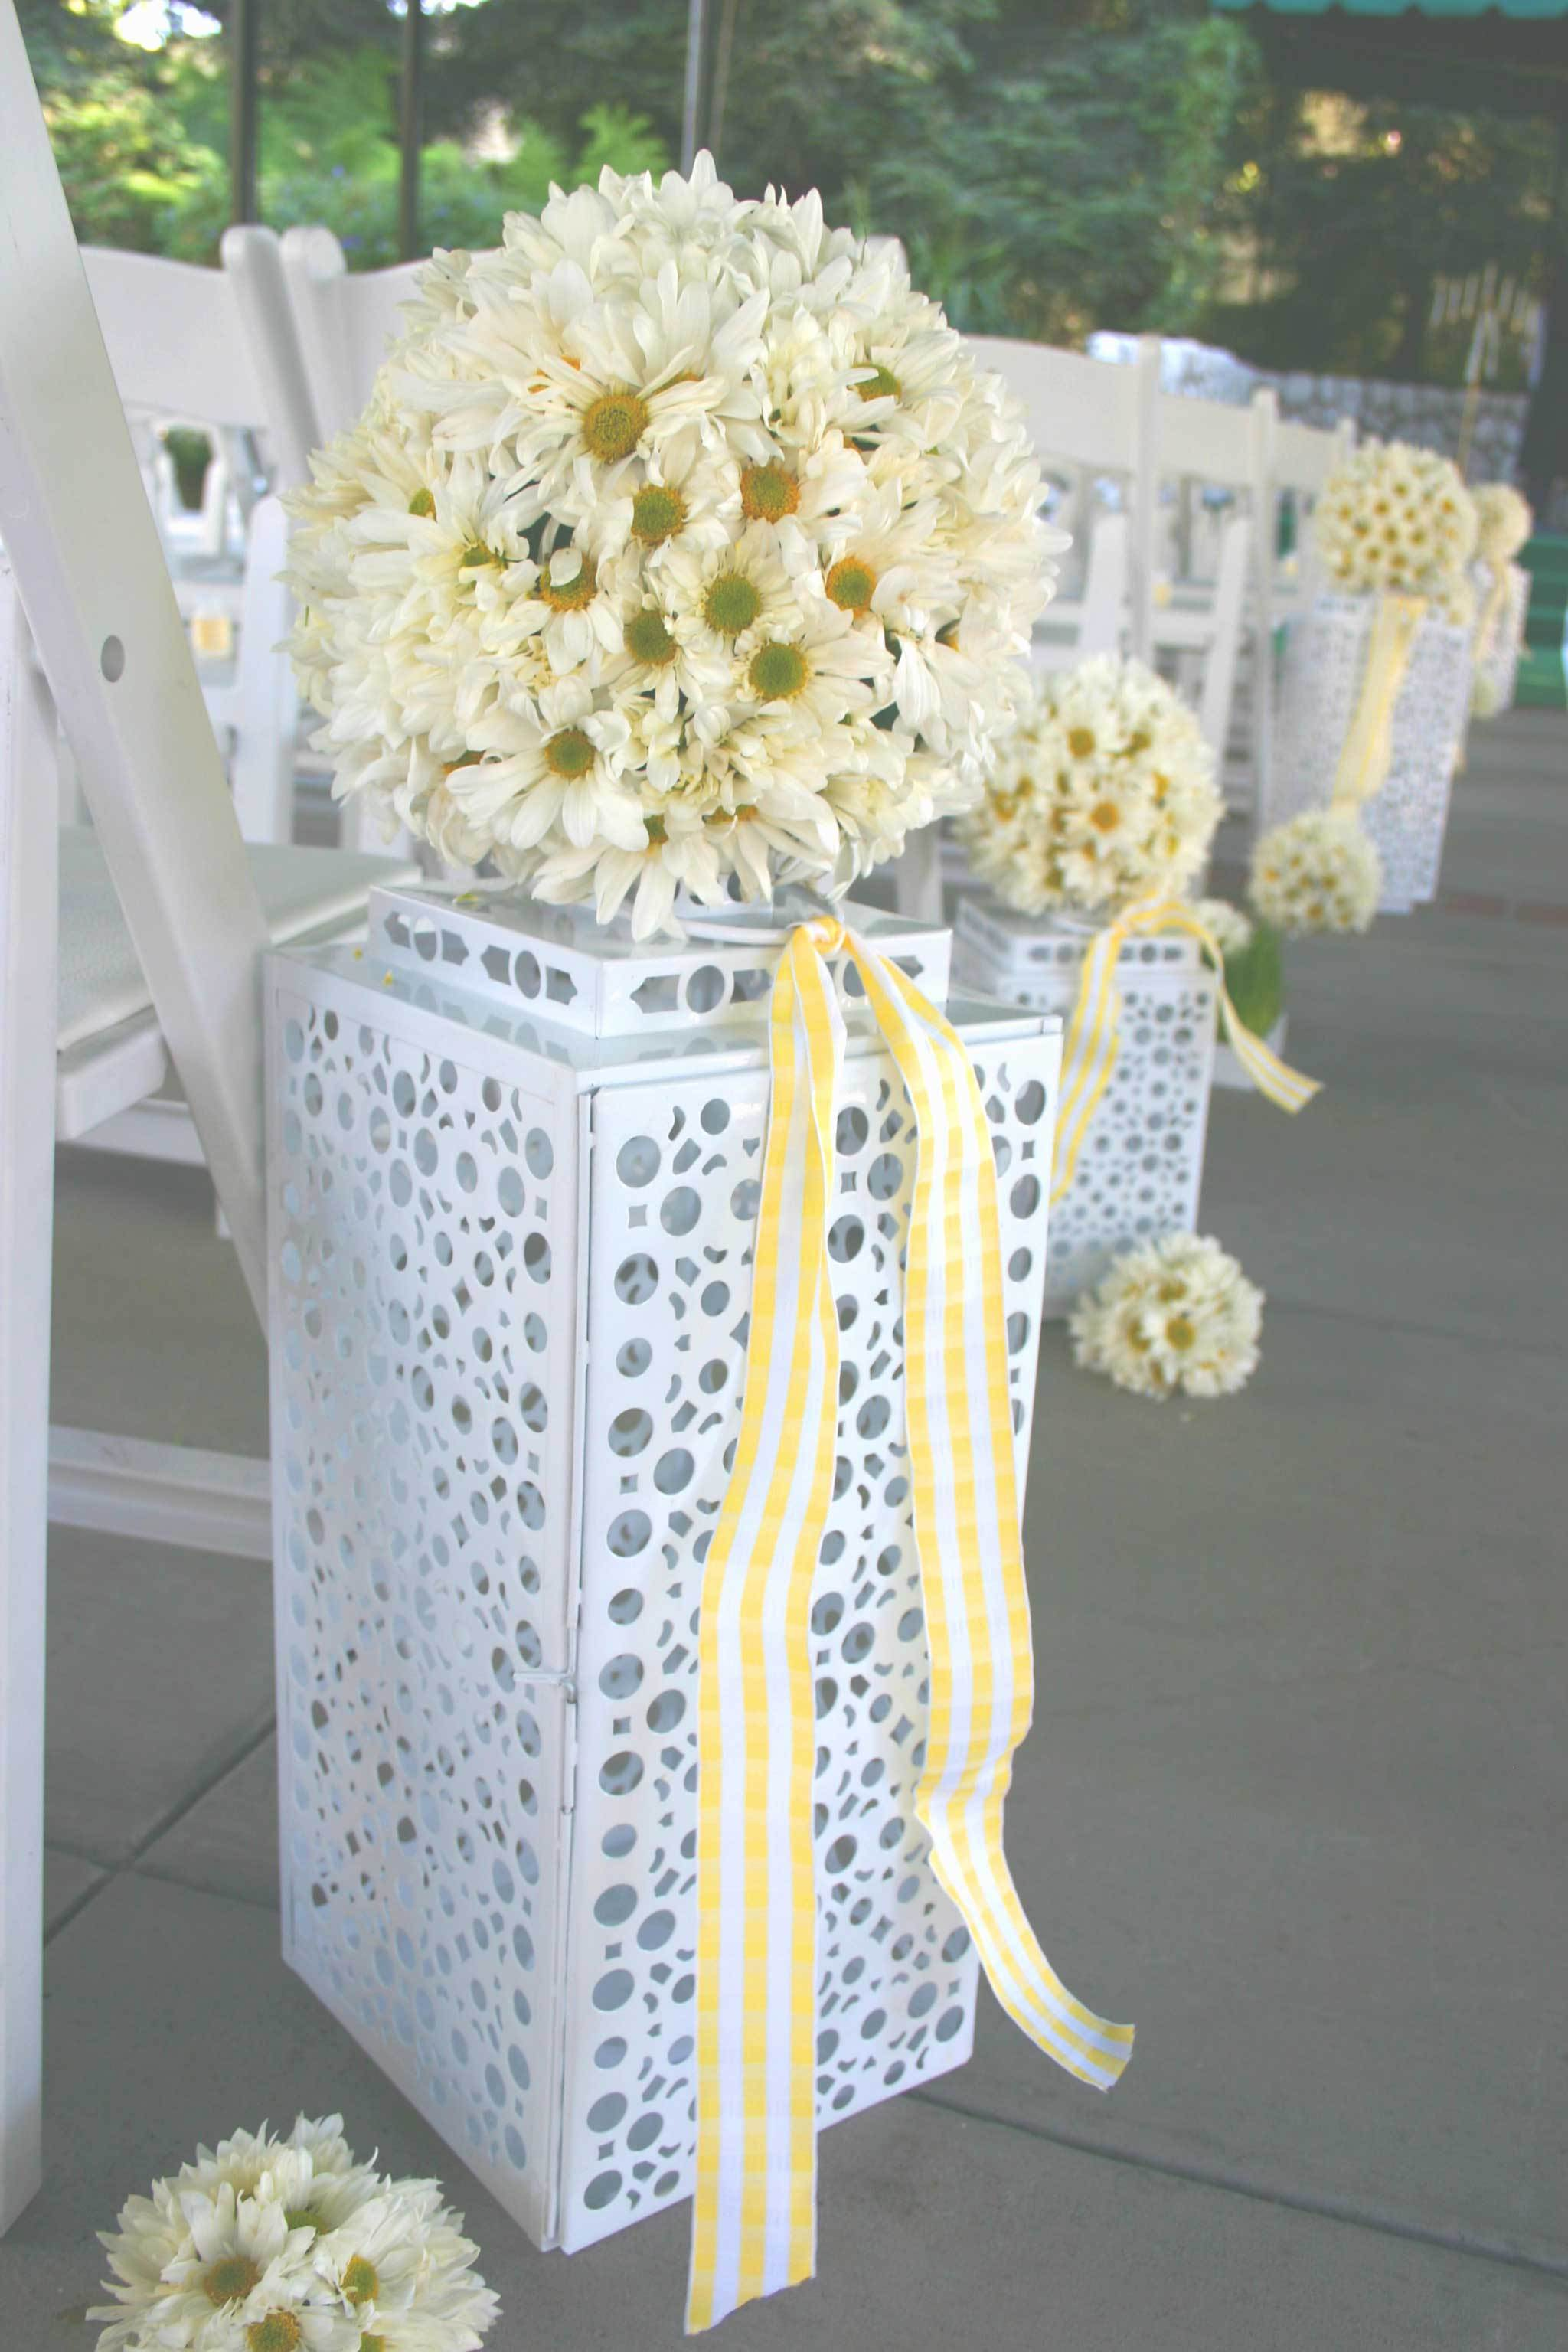 Ceremony, Reception, Flowers & Decor, Cakes, white, yellow, green, cake, Ceremony Flowers, Aisle Decor, Bride Bouquets, Boutonnieres, Flowers, Bouquet, Daisy, Boutonniere, Aisle, La partie events, Daisies, Hippie, Century, Mid